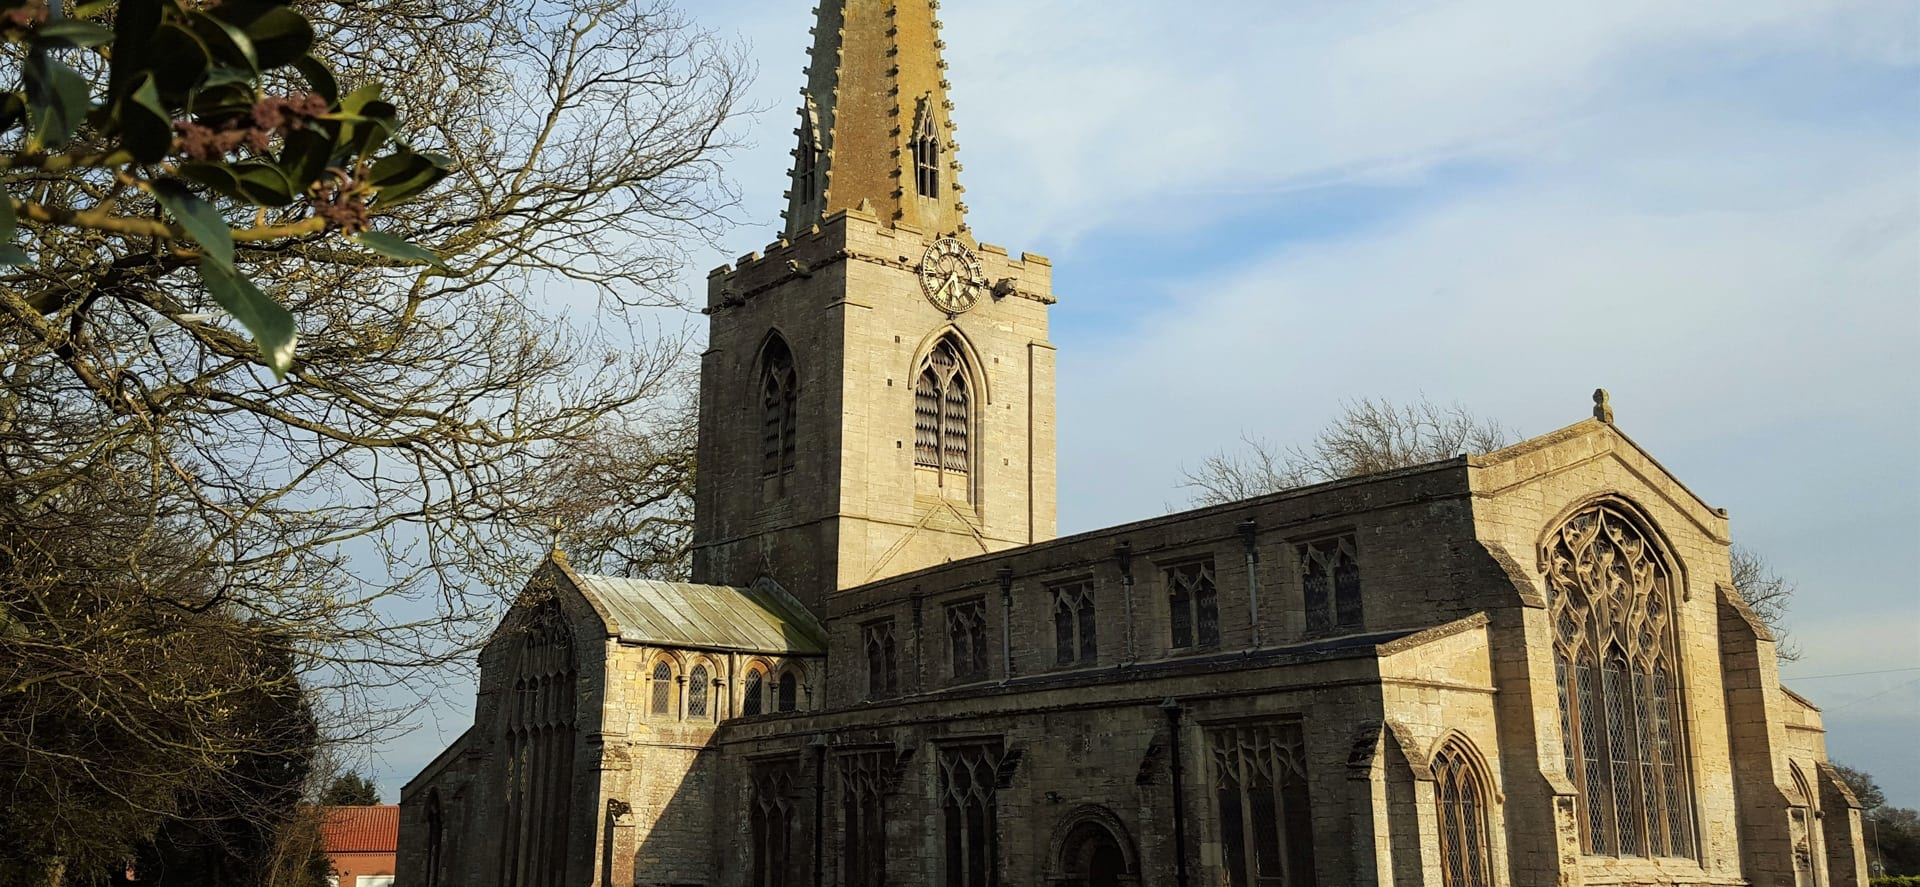 St Marys Church, Sutterton, Lincolnshire